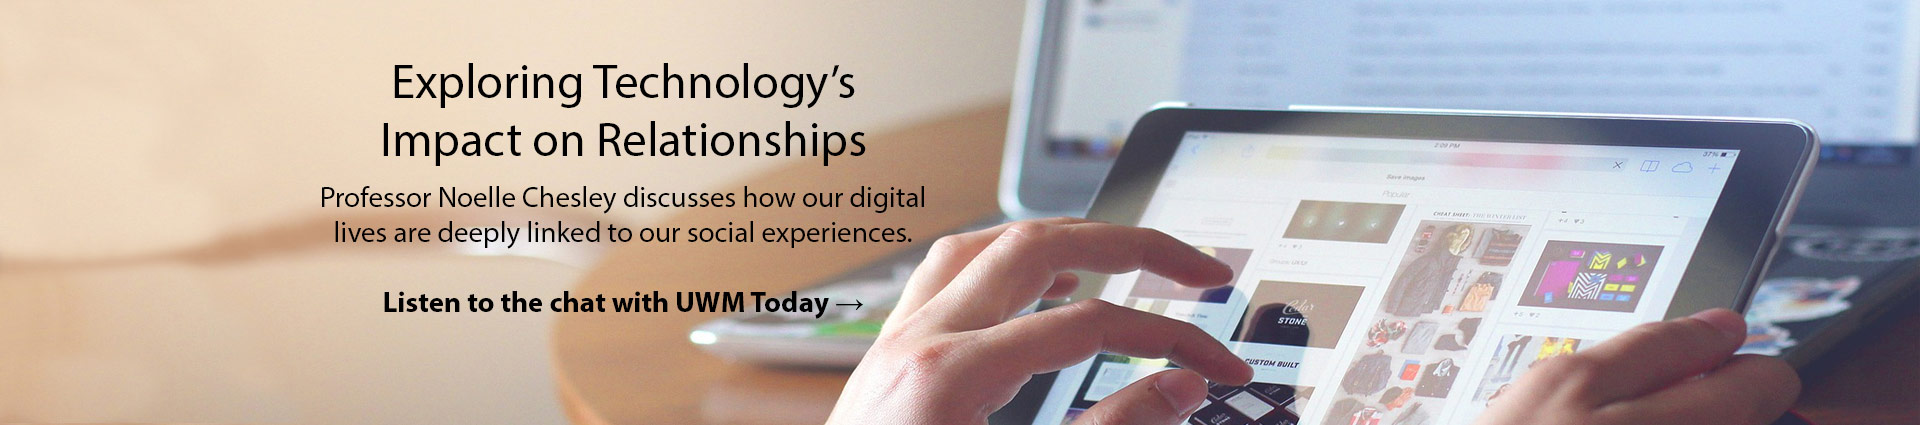 Exploring Technology's Impact on Relationships